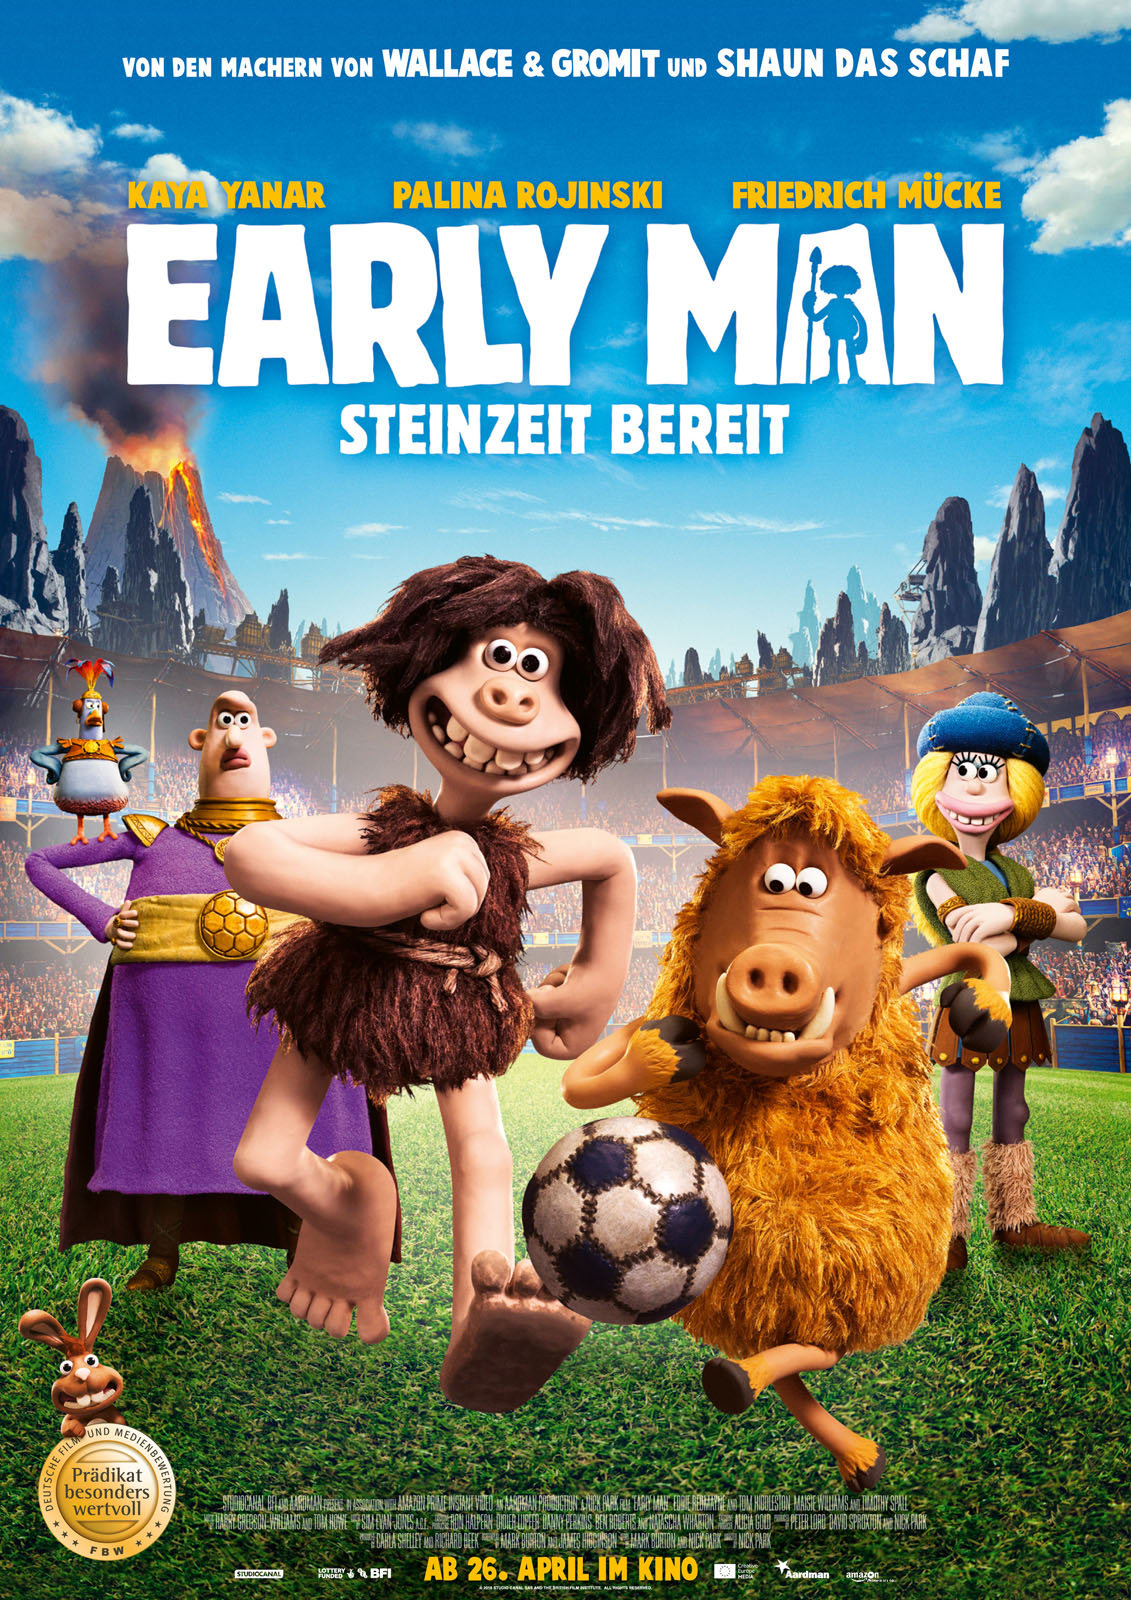 Early Man - Steinzeit bereit / Early Man (2018) film auf deutsch stream german online